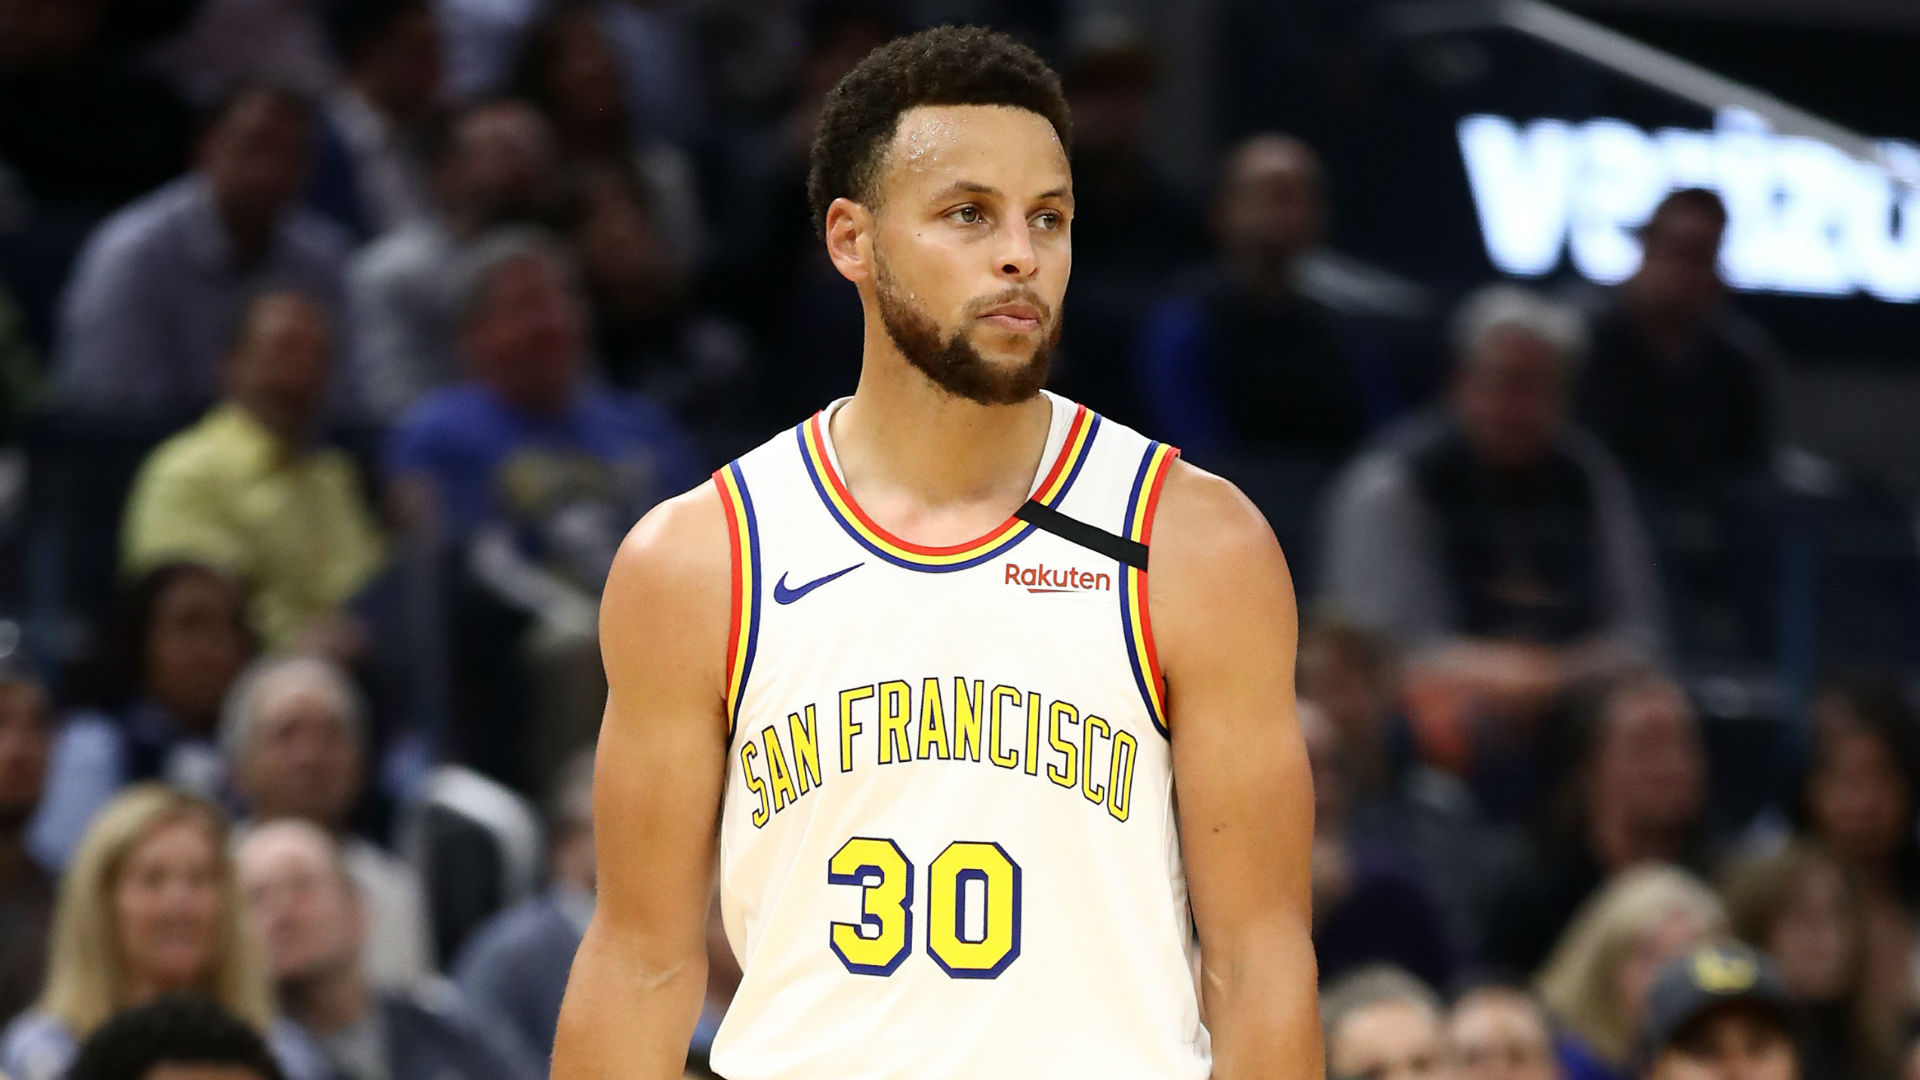 It's the most frustrating time of the year for the Golden State Warriors' Stephen Curry